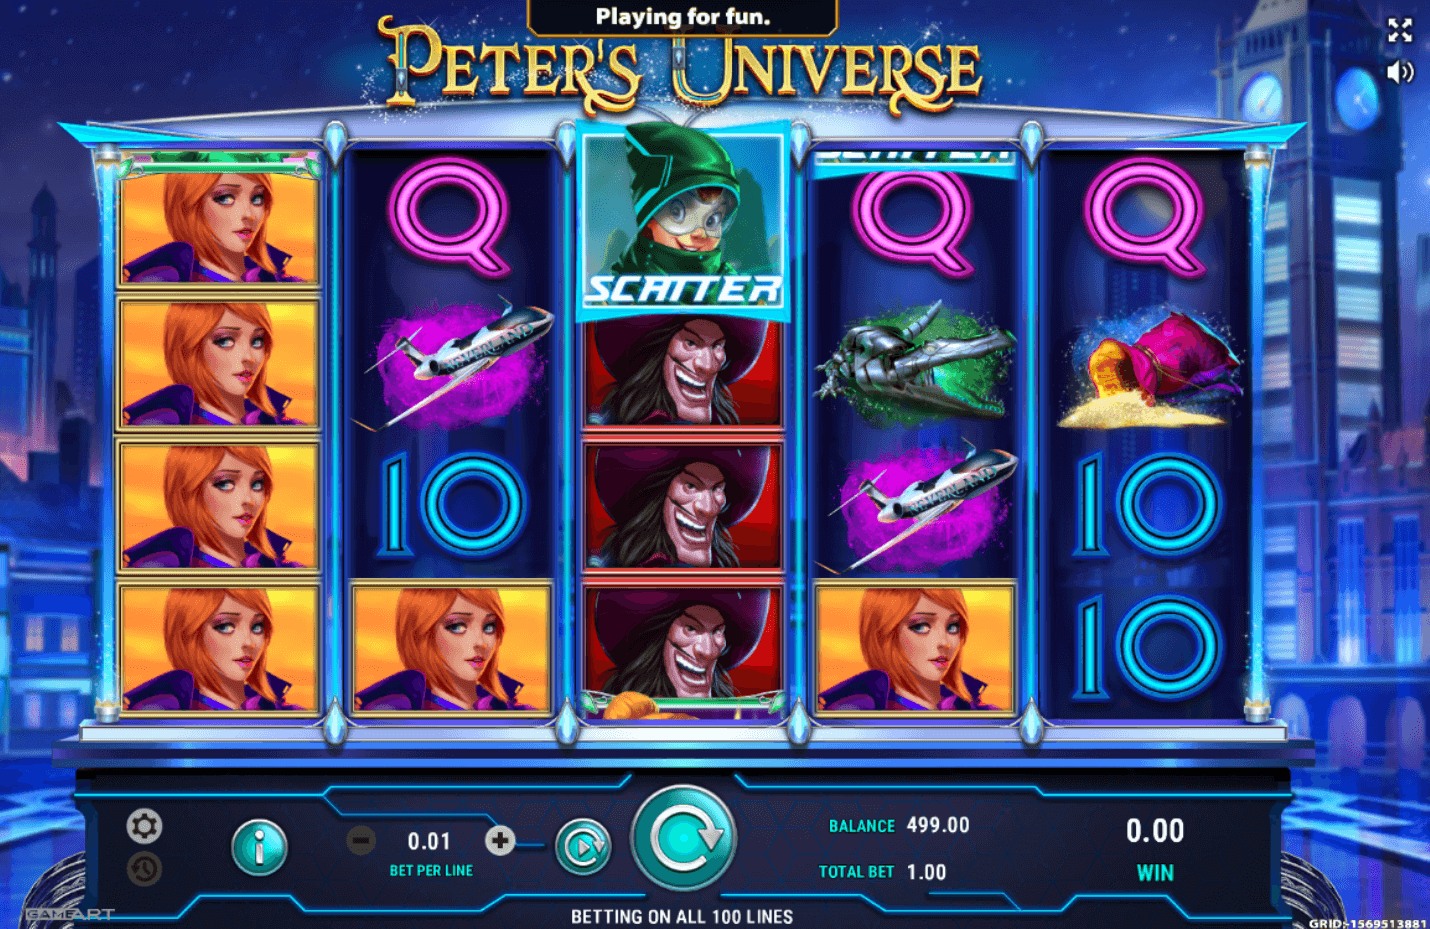 Peter's Universe by Gameart - Slotegrator